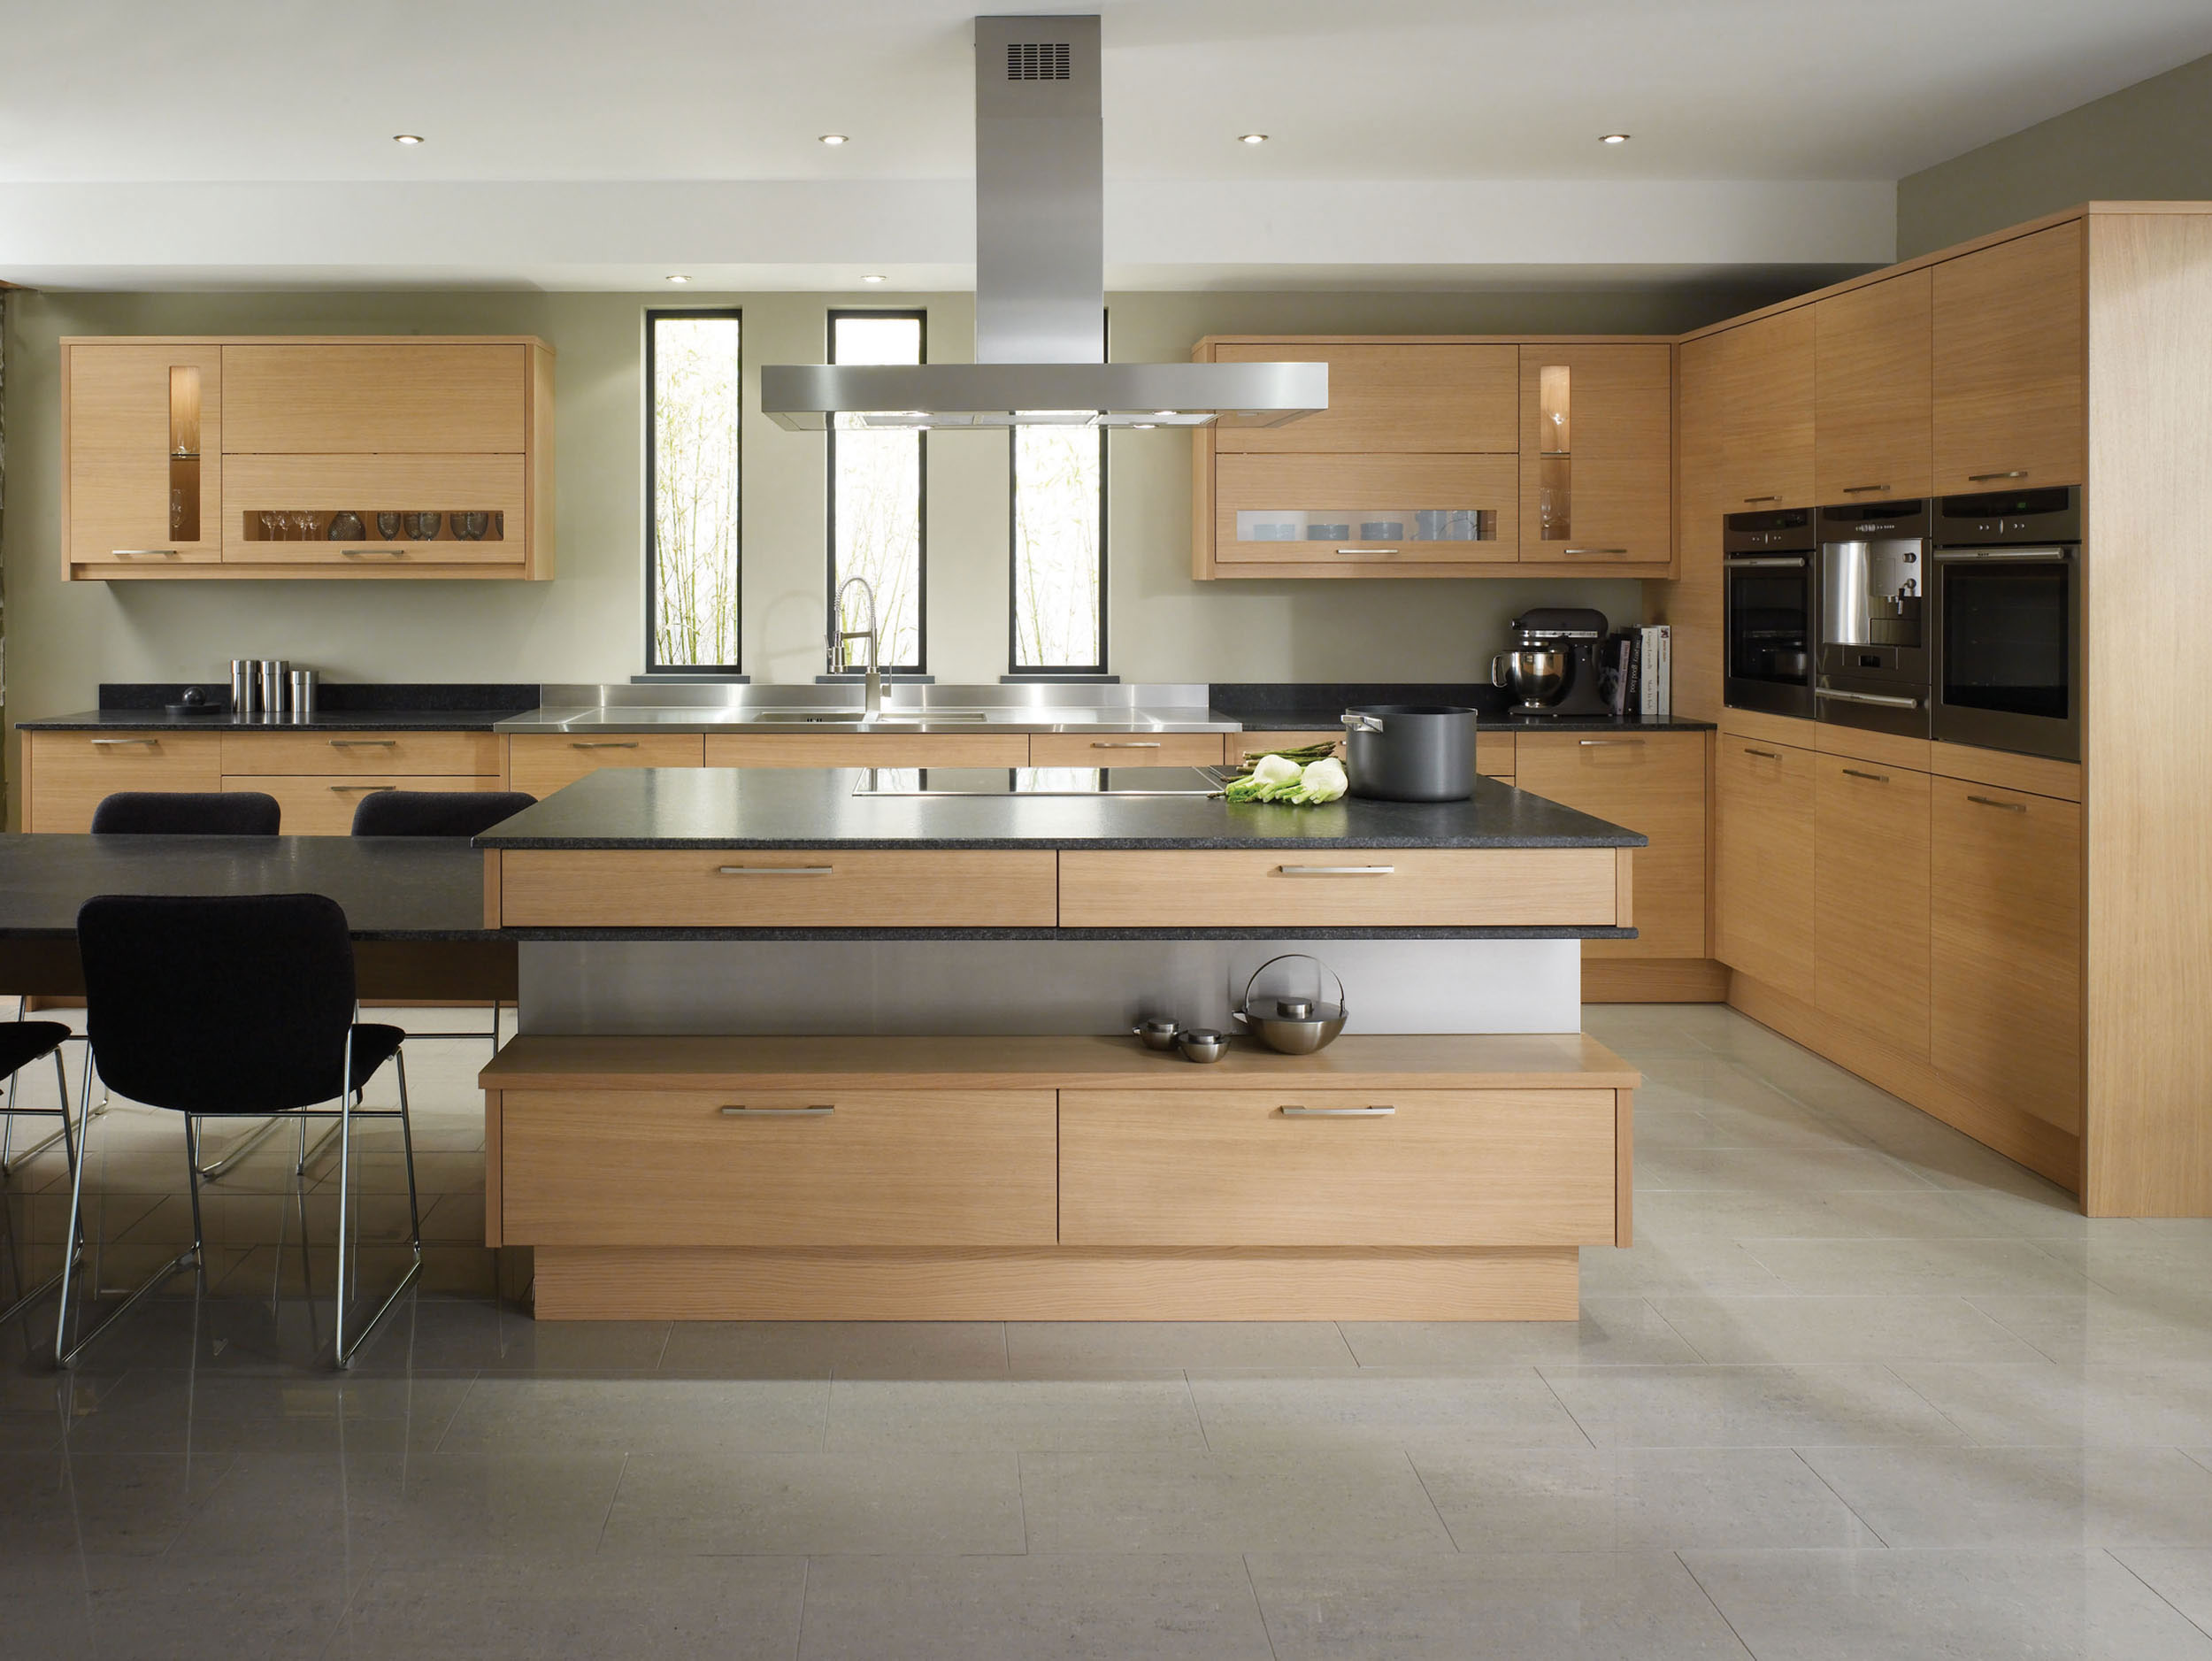 Northern-Virginia-Kitchen-Remodeling-Photo-Example-4